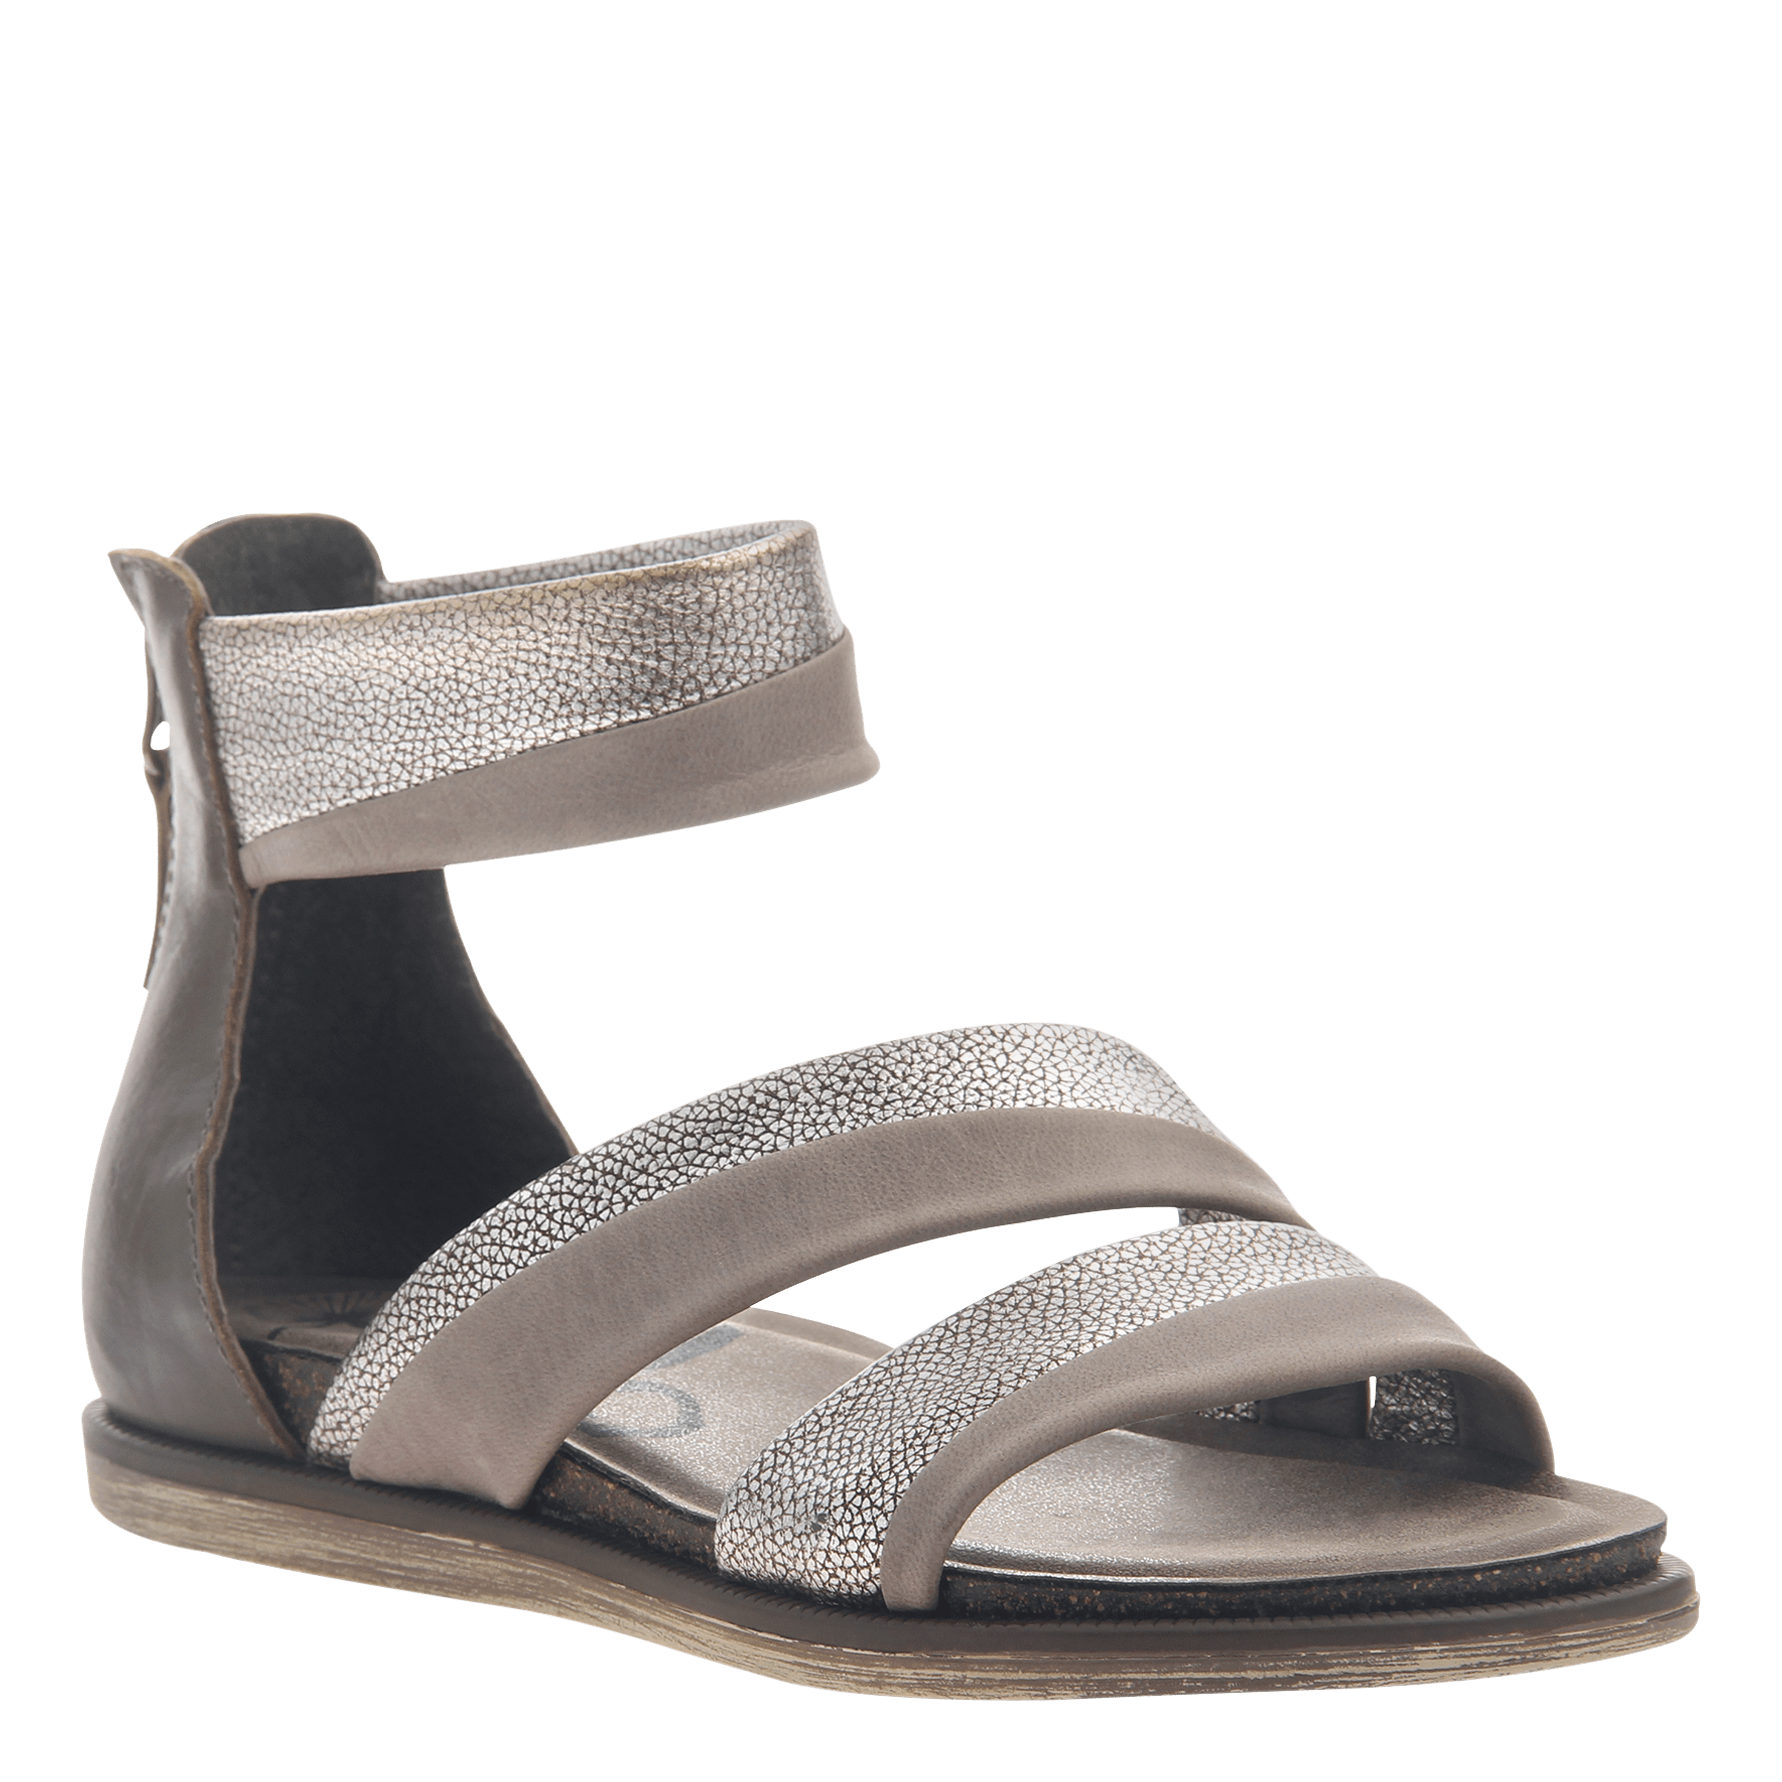 cf6a9b48a0f Womens flat sandals Souvenir in Zinc